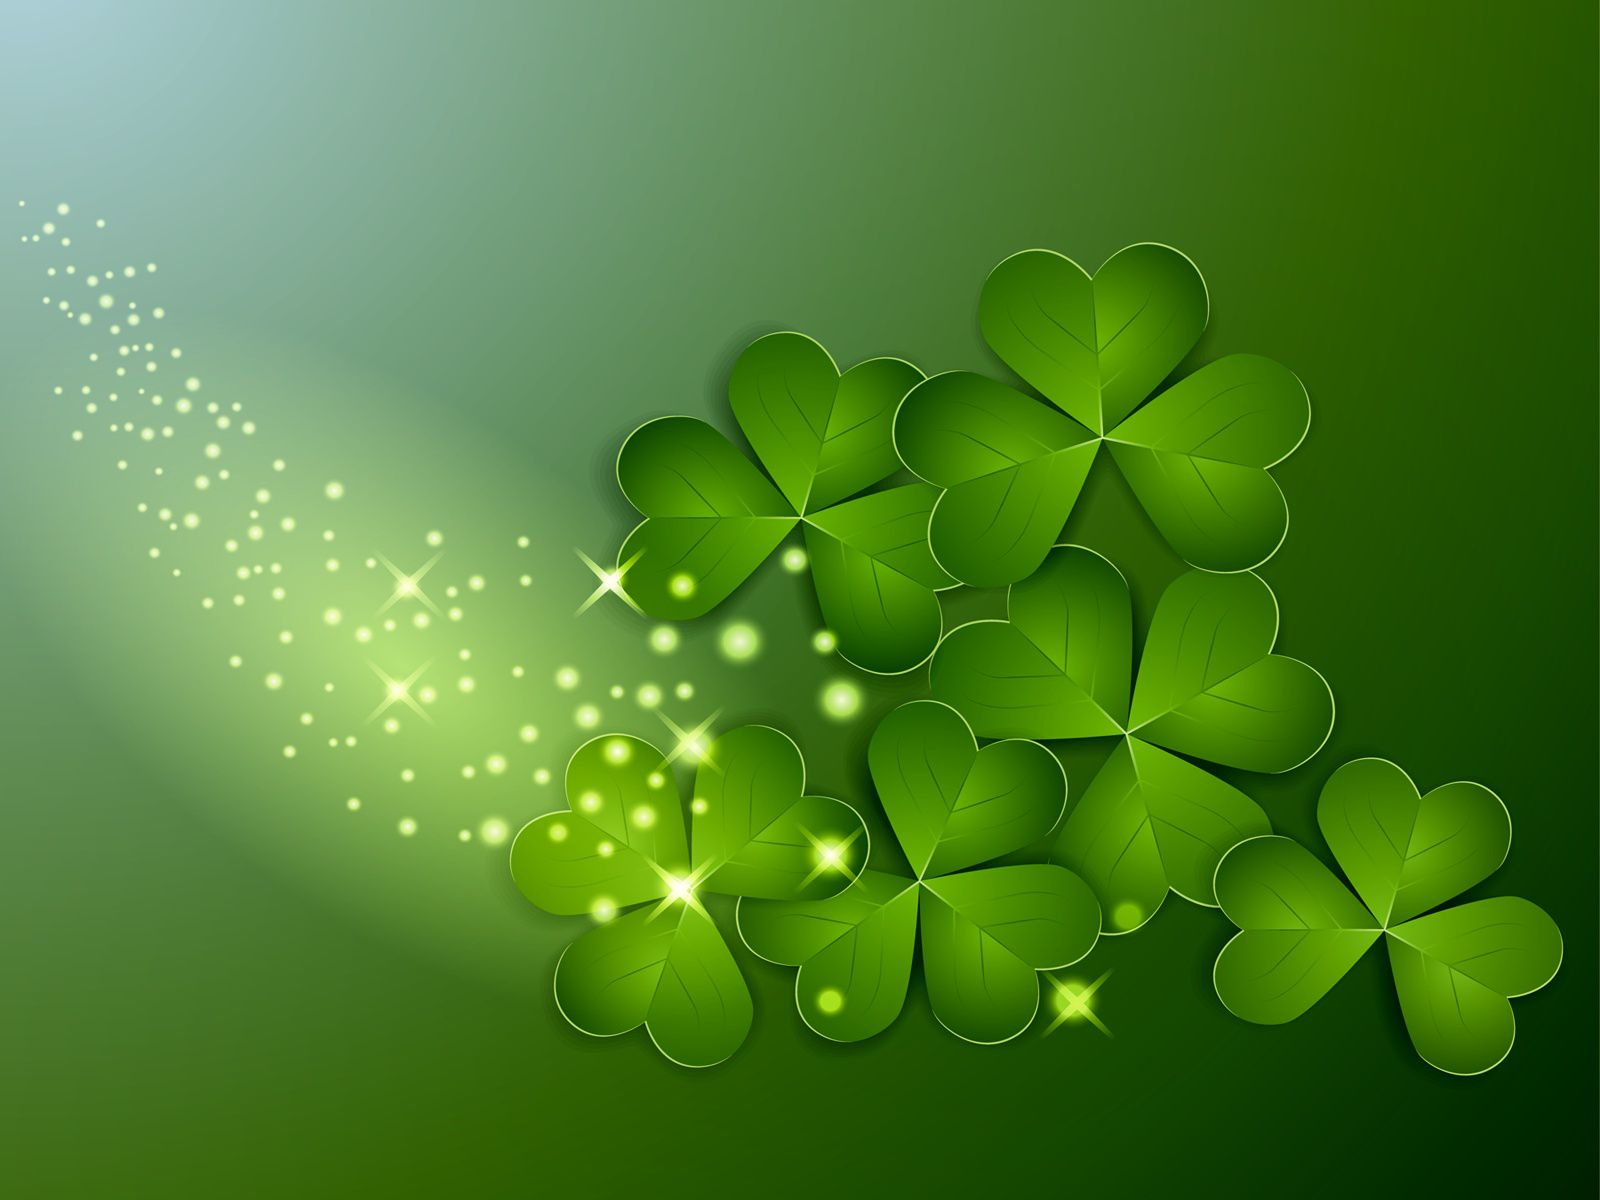 11 St Patricks Day Wallpapers Youre Gonna Love 1600x1200